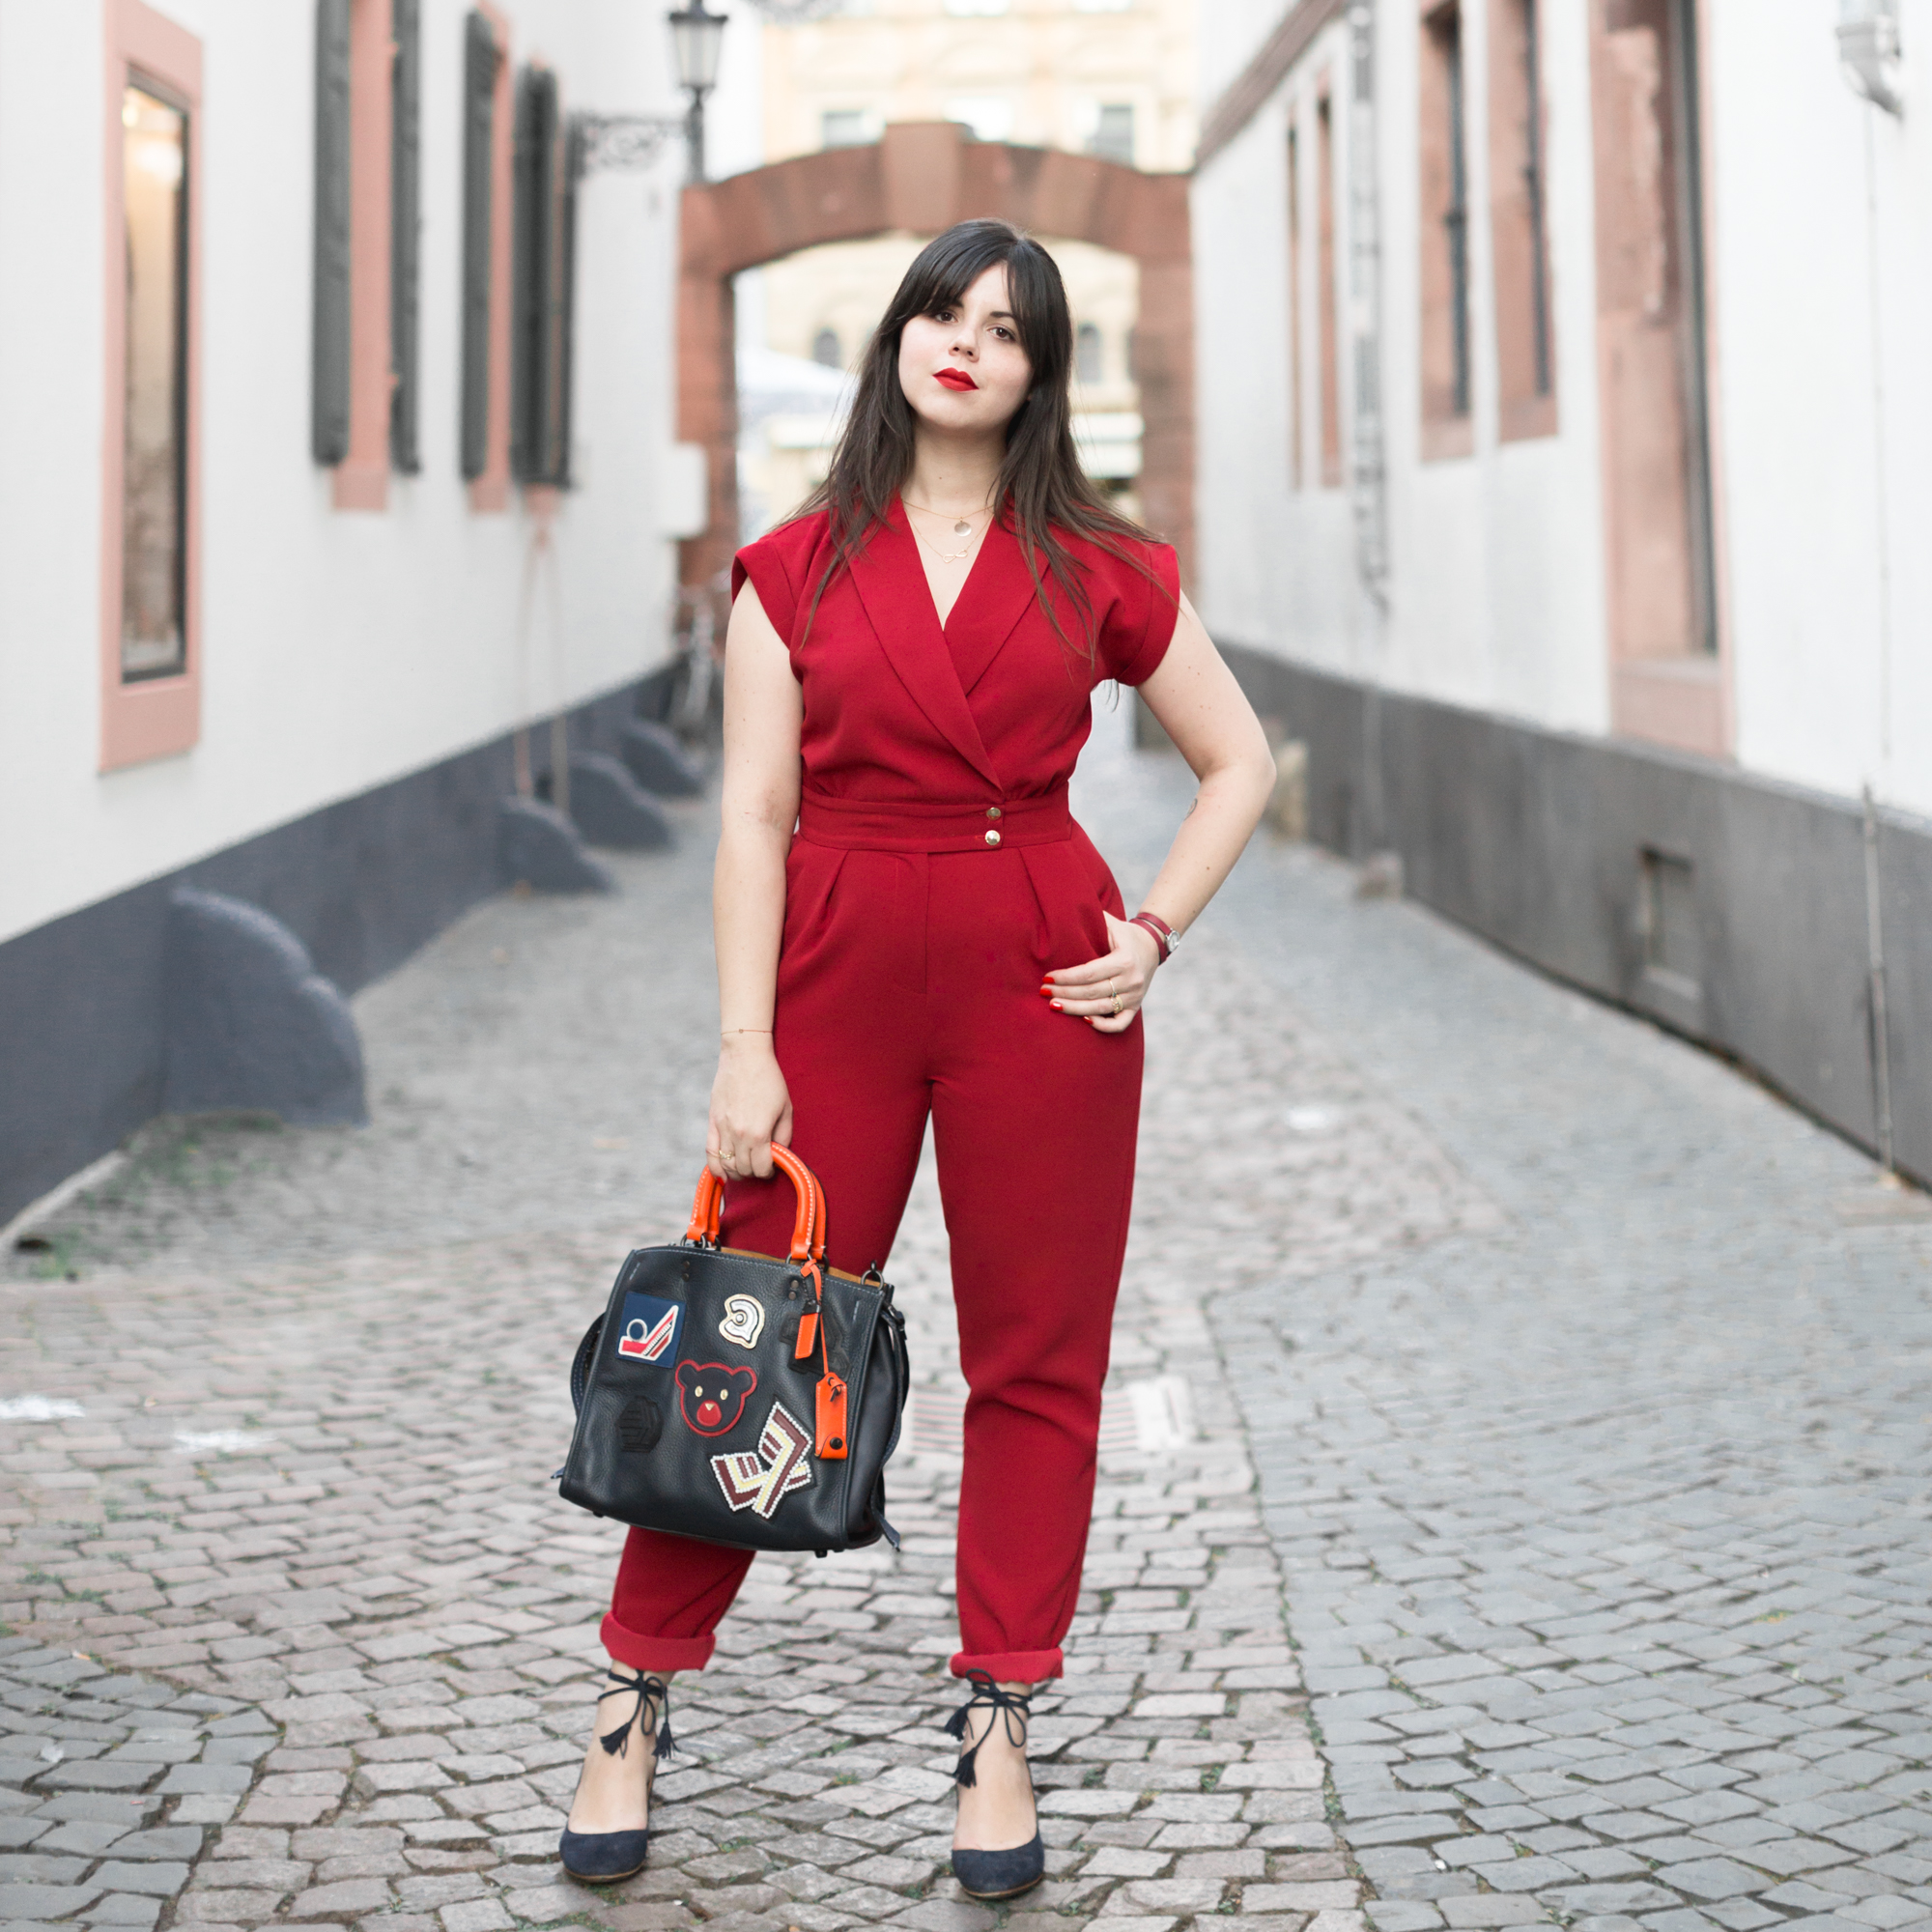 varsity-rogue-bag-coach-new-york-red-jumpsuit-valentina-sezane-marine-copyright-pauline-paulinefashionblog-com-1-3